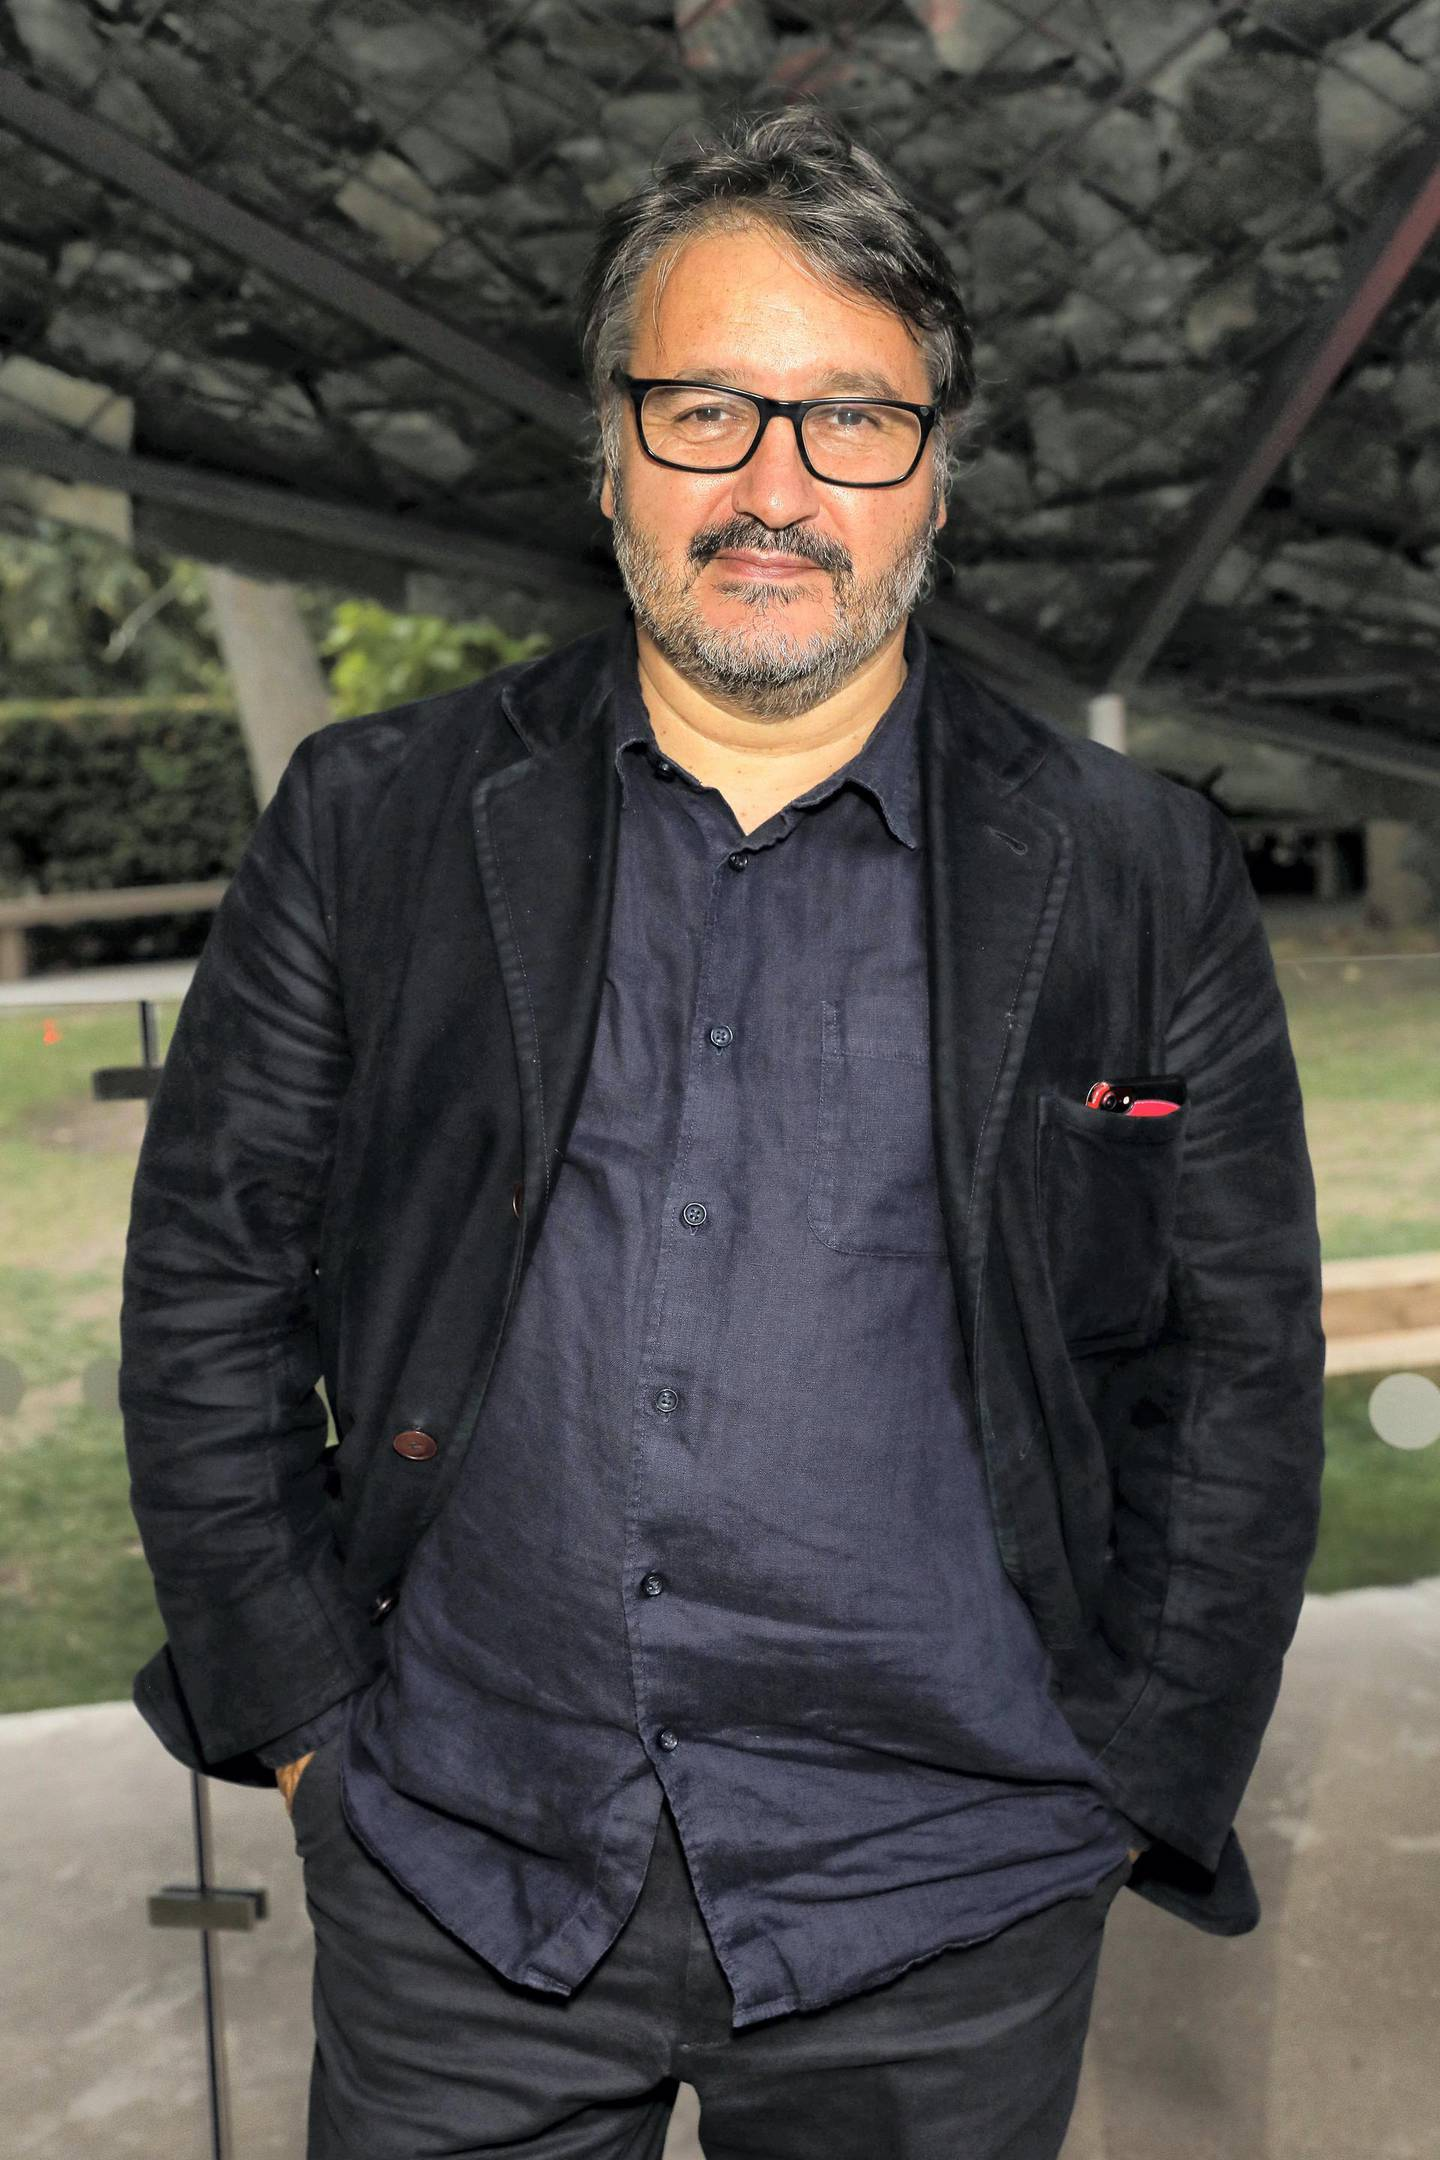 LONDON, ENGLAND - SEPTEMBER 03: Peter Florence attends the The Booker Prize 2019 party to celebrate the longlist and recently announced shortlist at The Serpentine Pavilion on September 3, 2019 in London, England. (Photo by David M. Benett/Dave Benett/Getty Images)